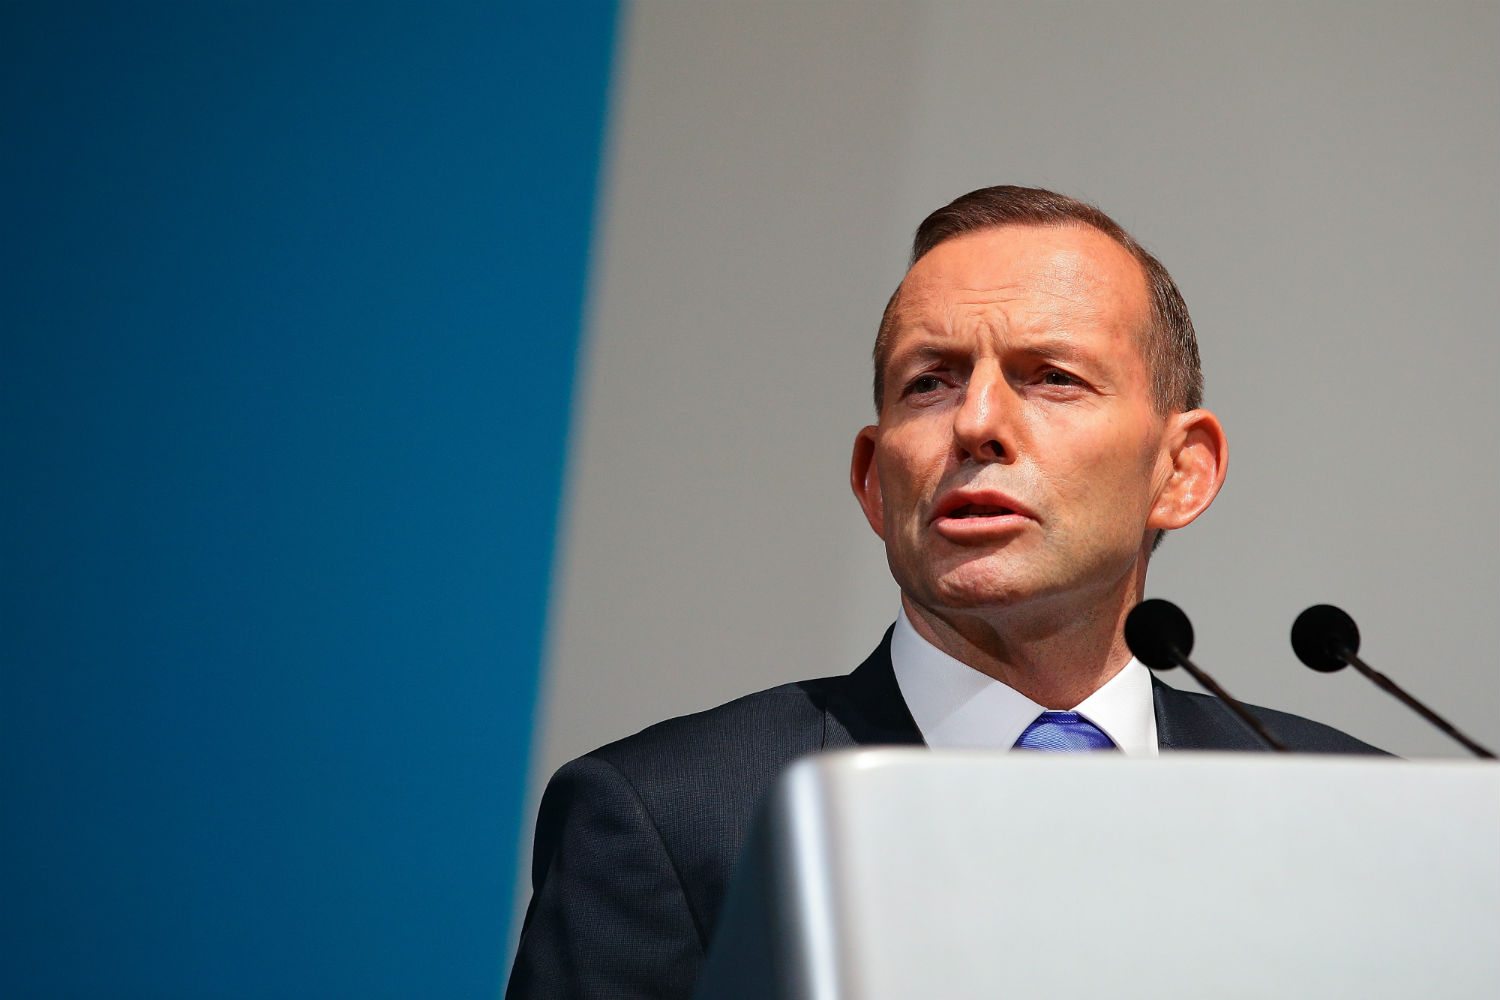 Tony-Abbott-GettyImages-478950564 (1)